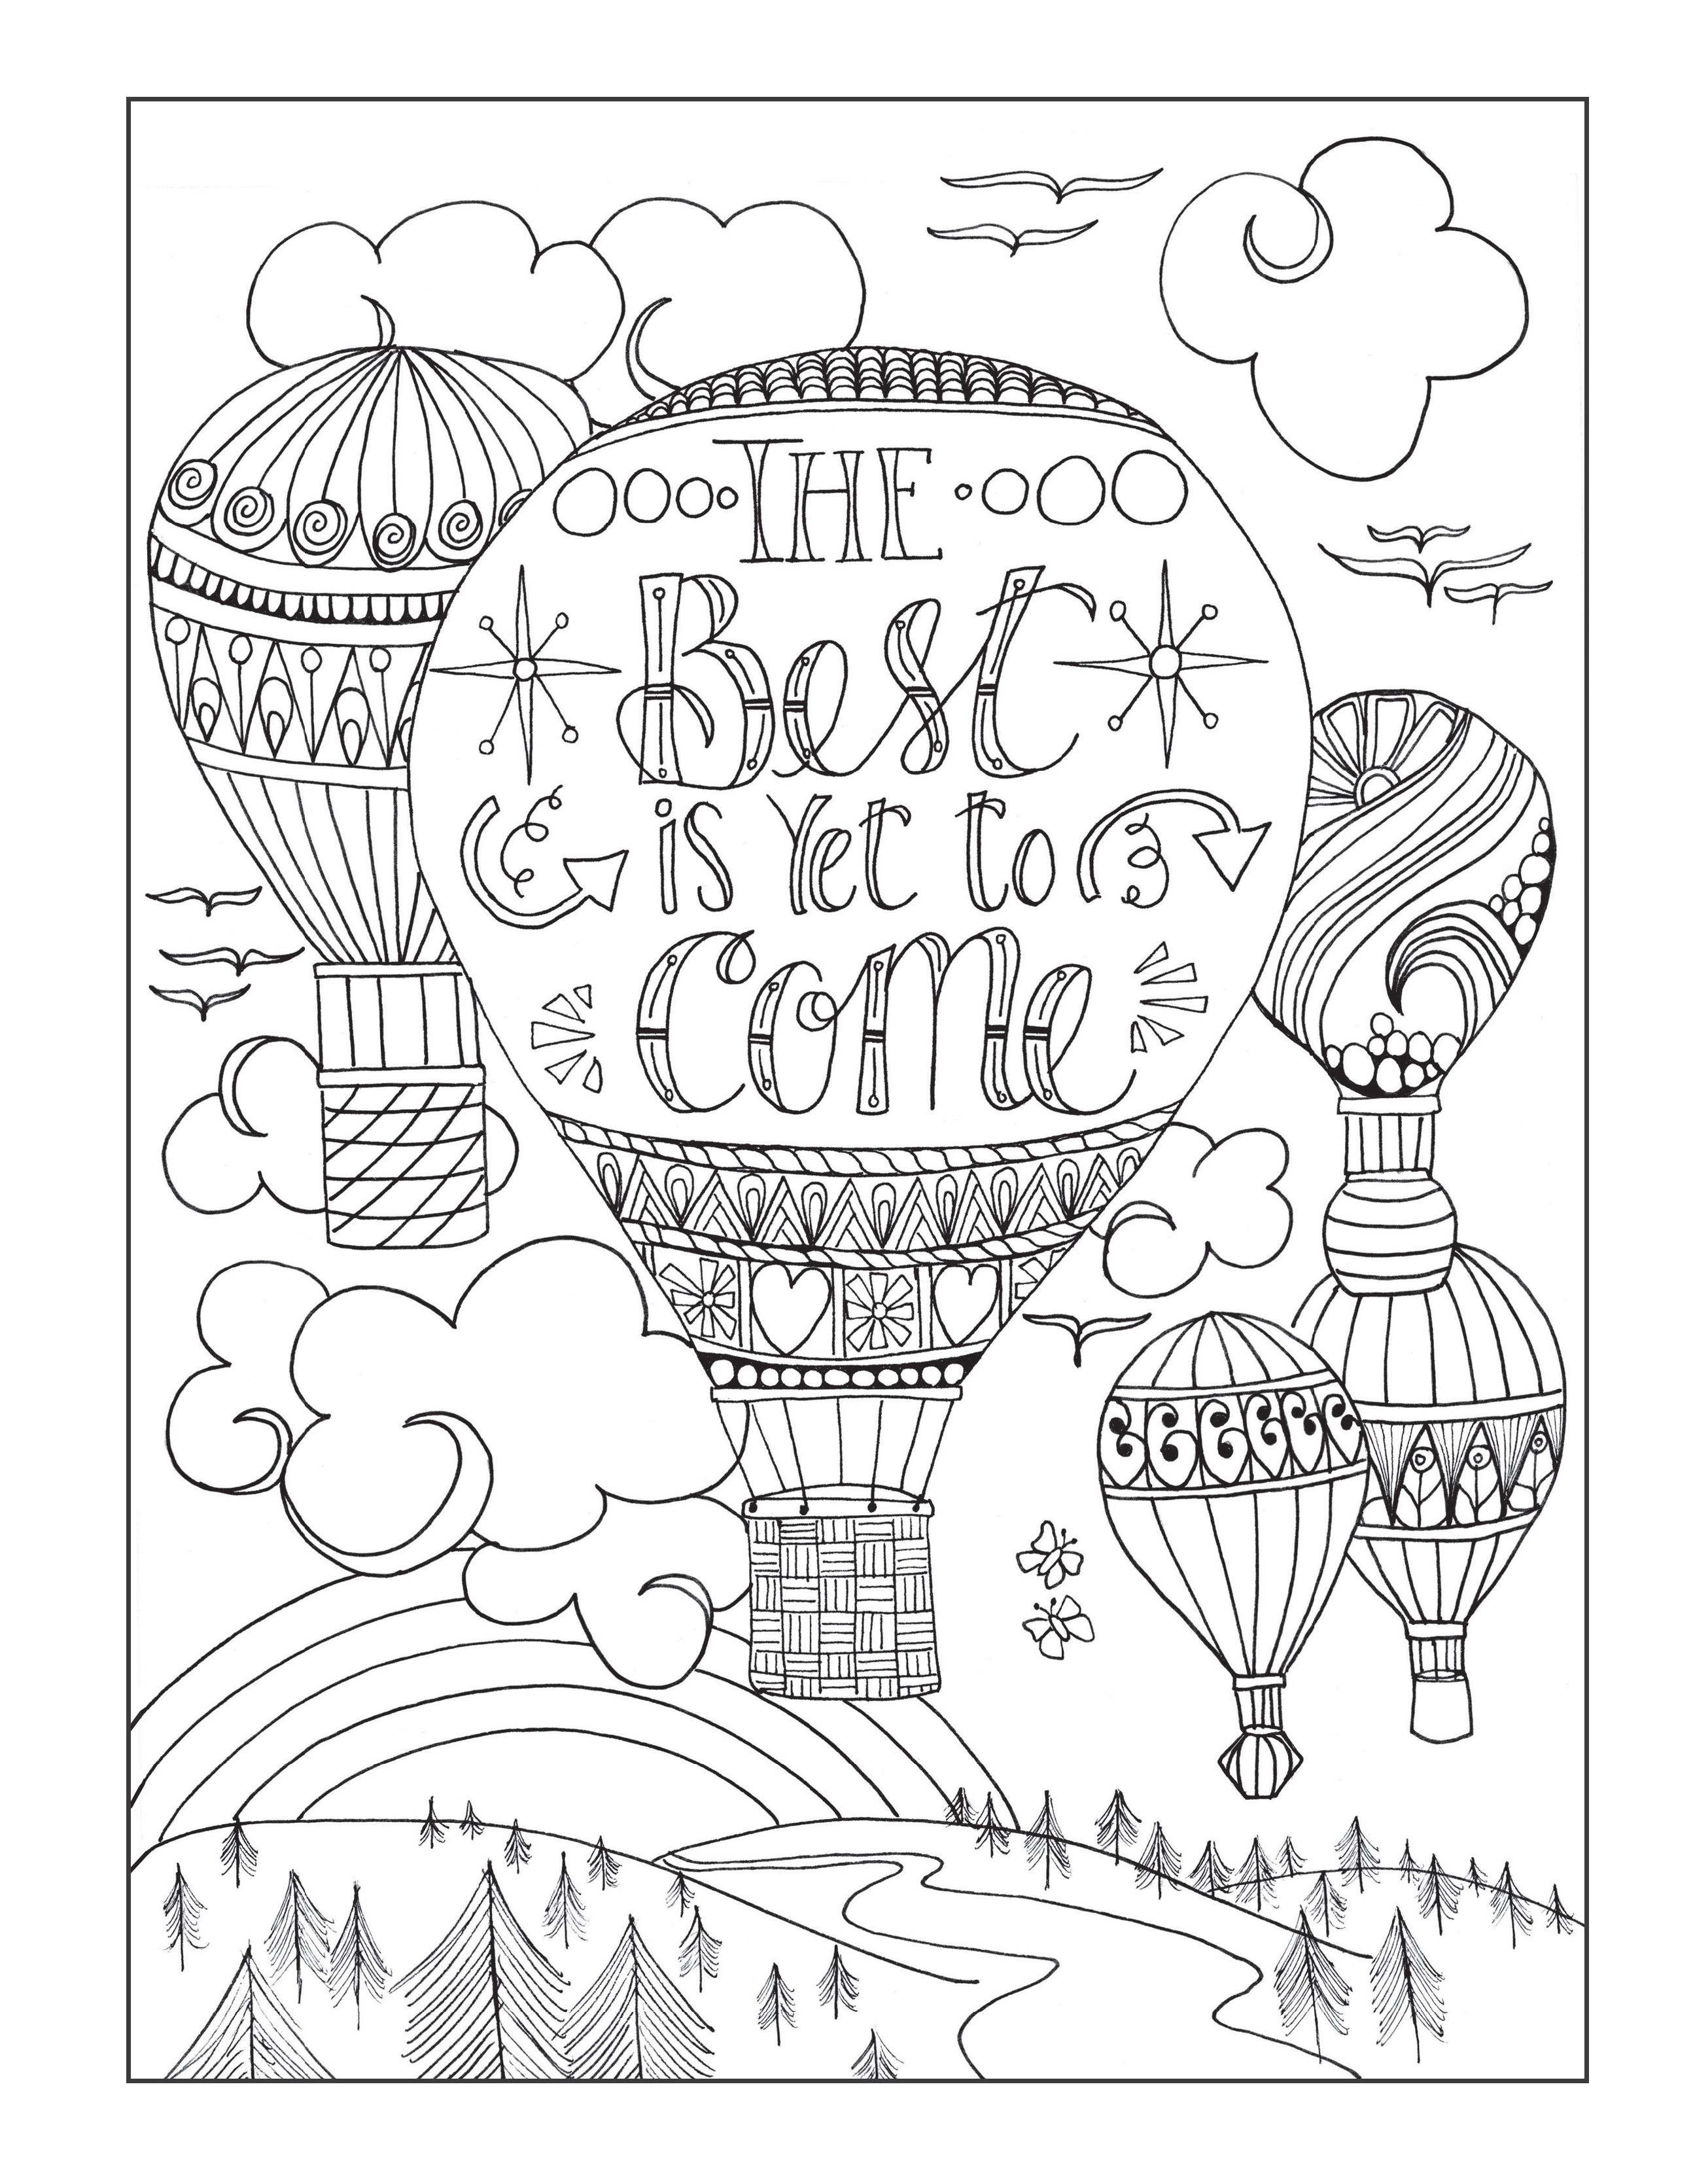 Here is another downloadable coloring page from our Inkspirations ...